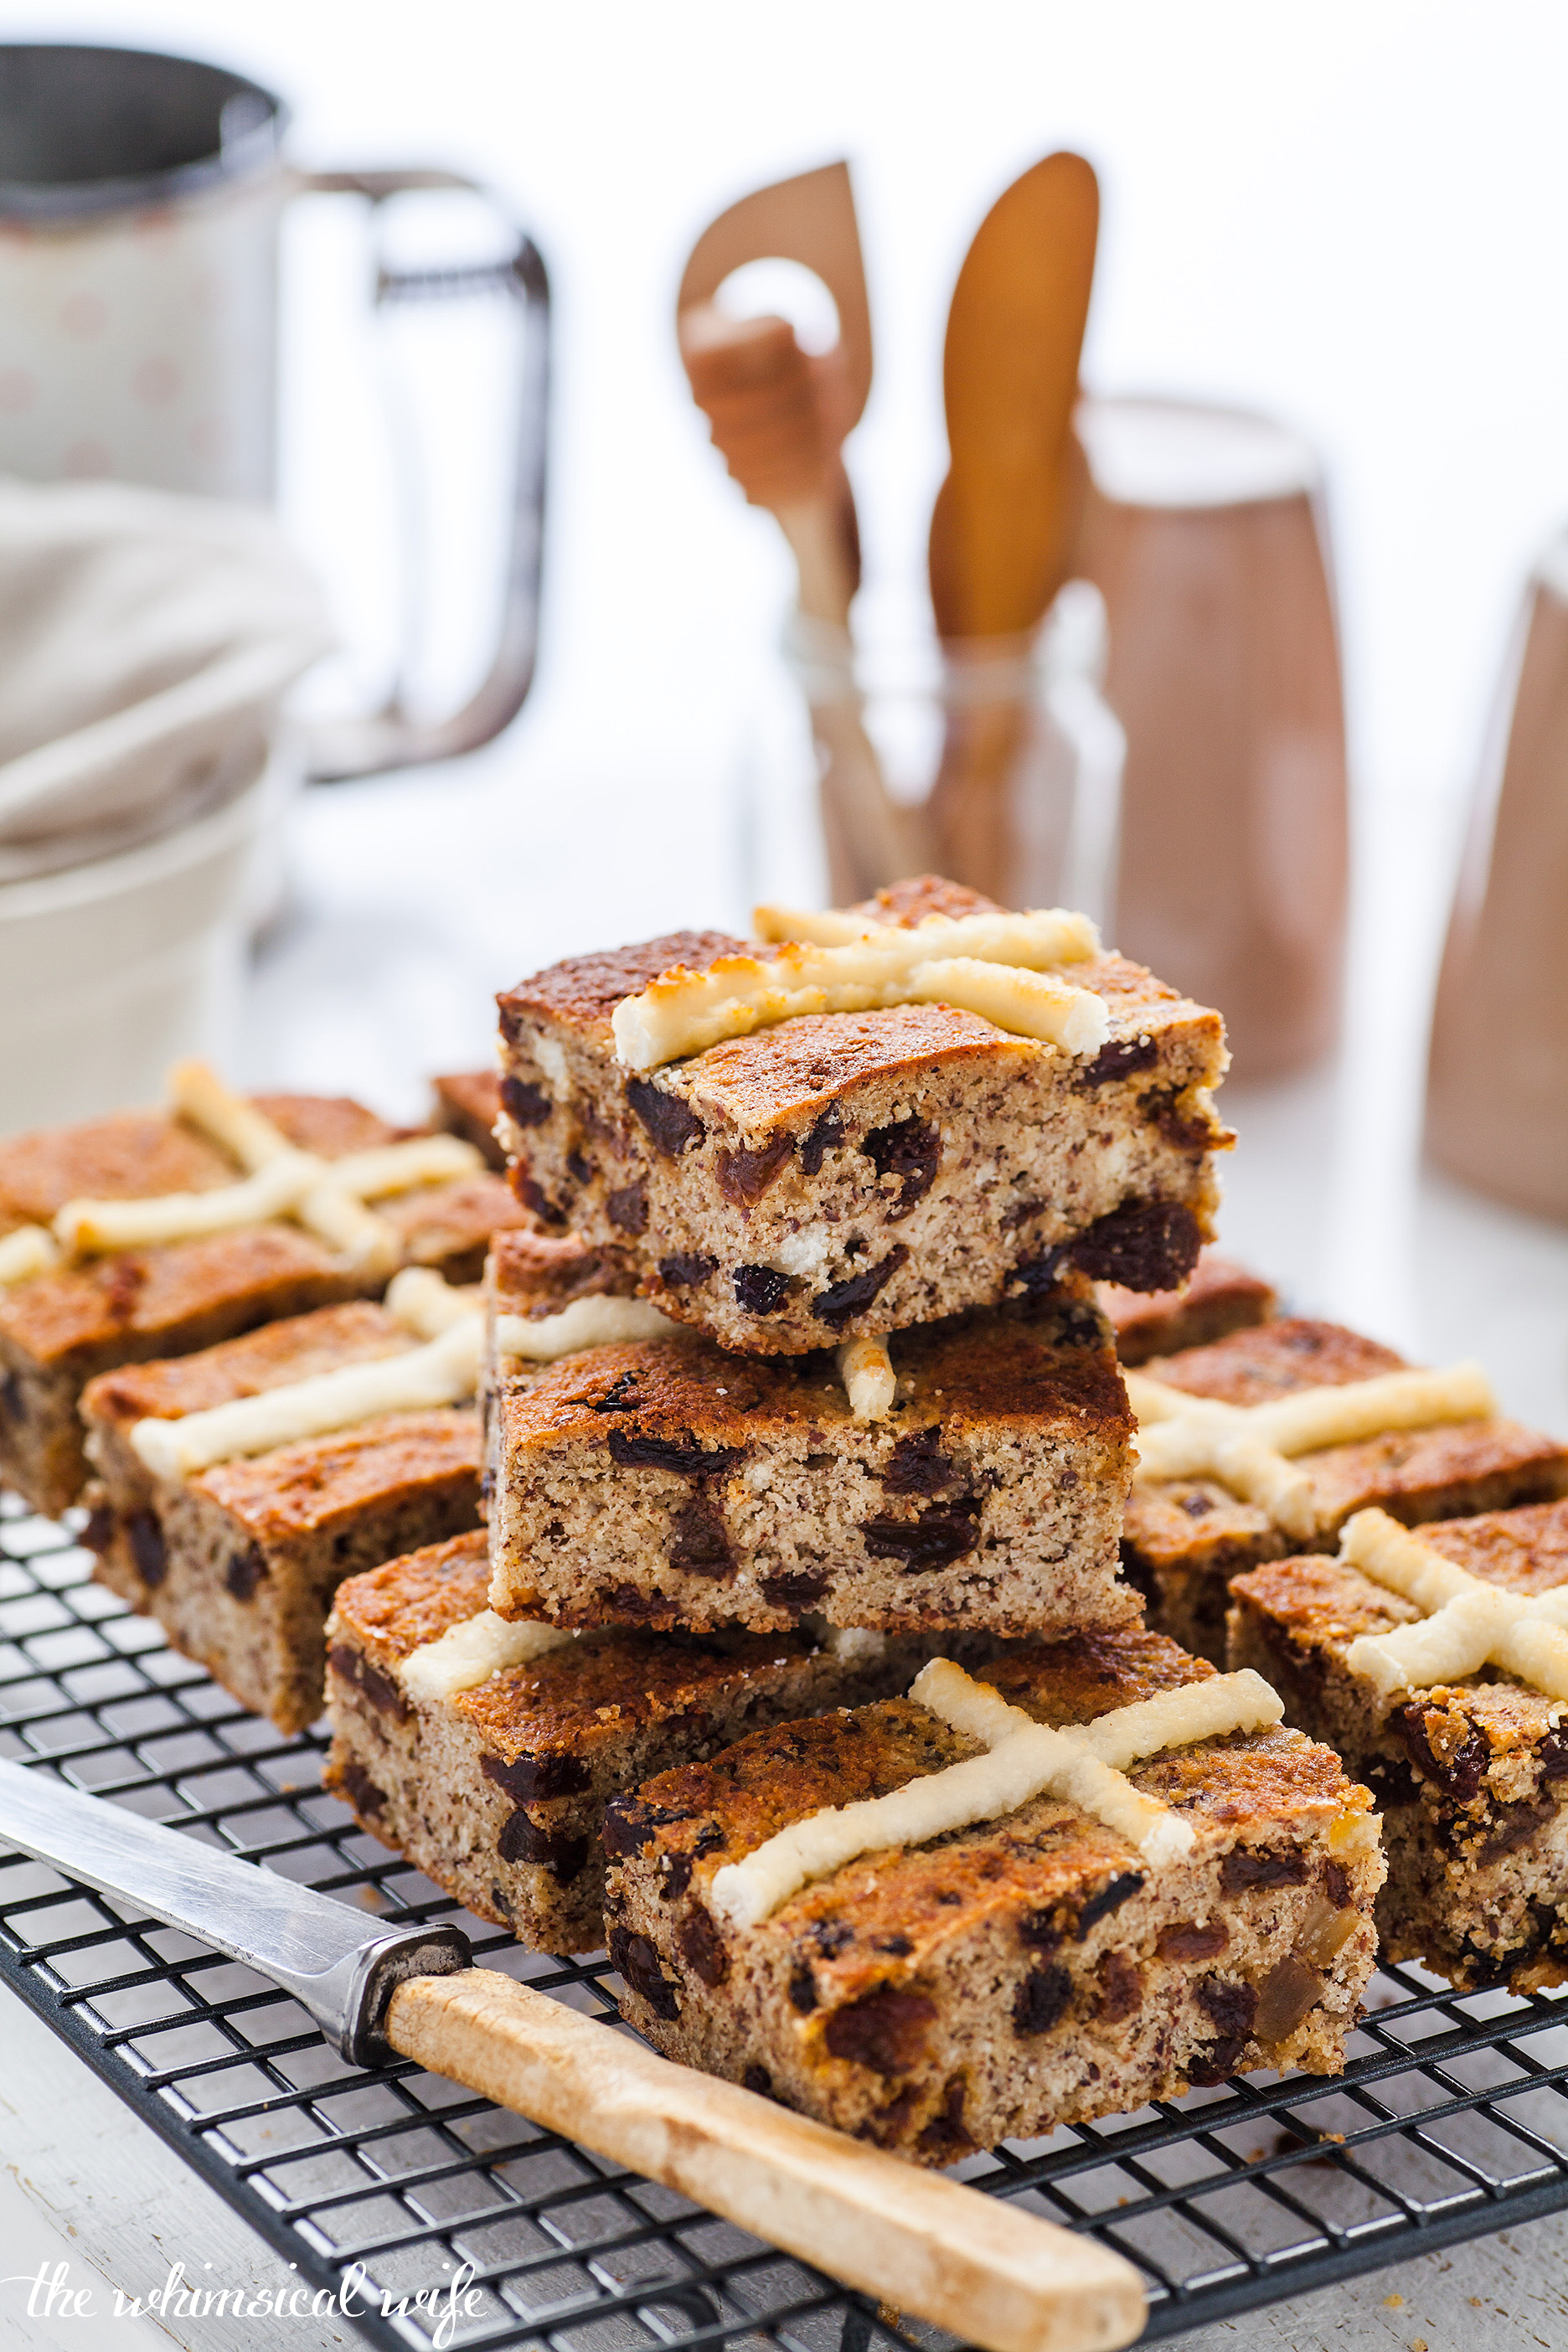 Hot Cross Bun Slice - Gluten & Dairy Free | The Whimsical Wife